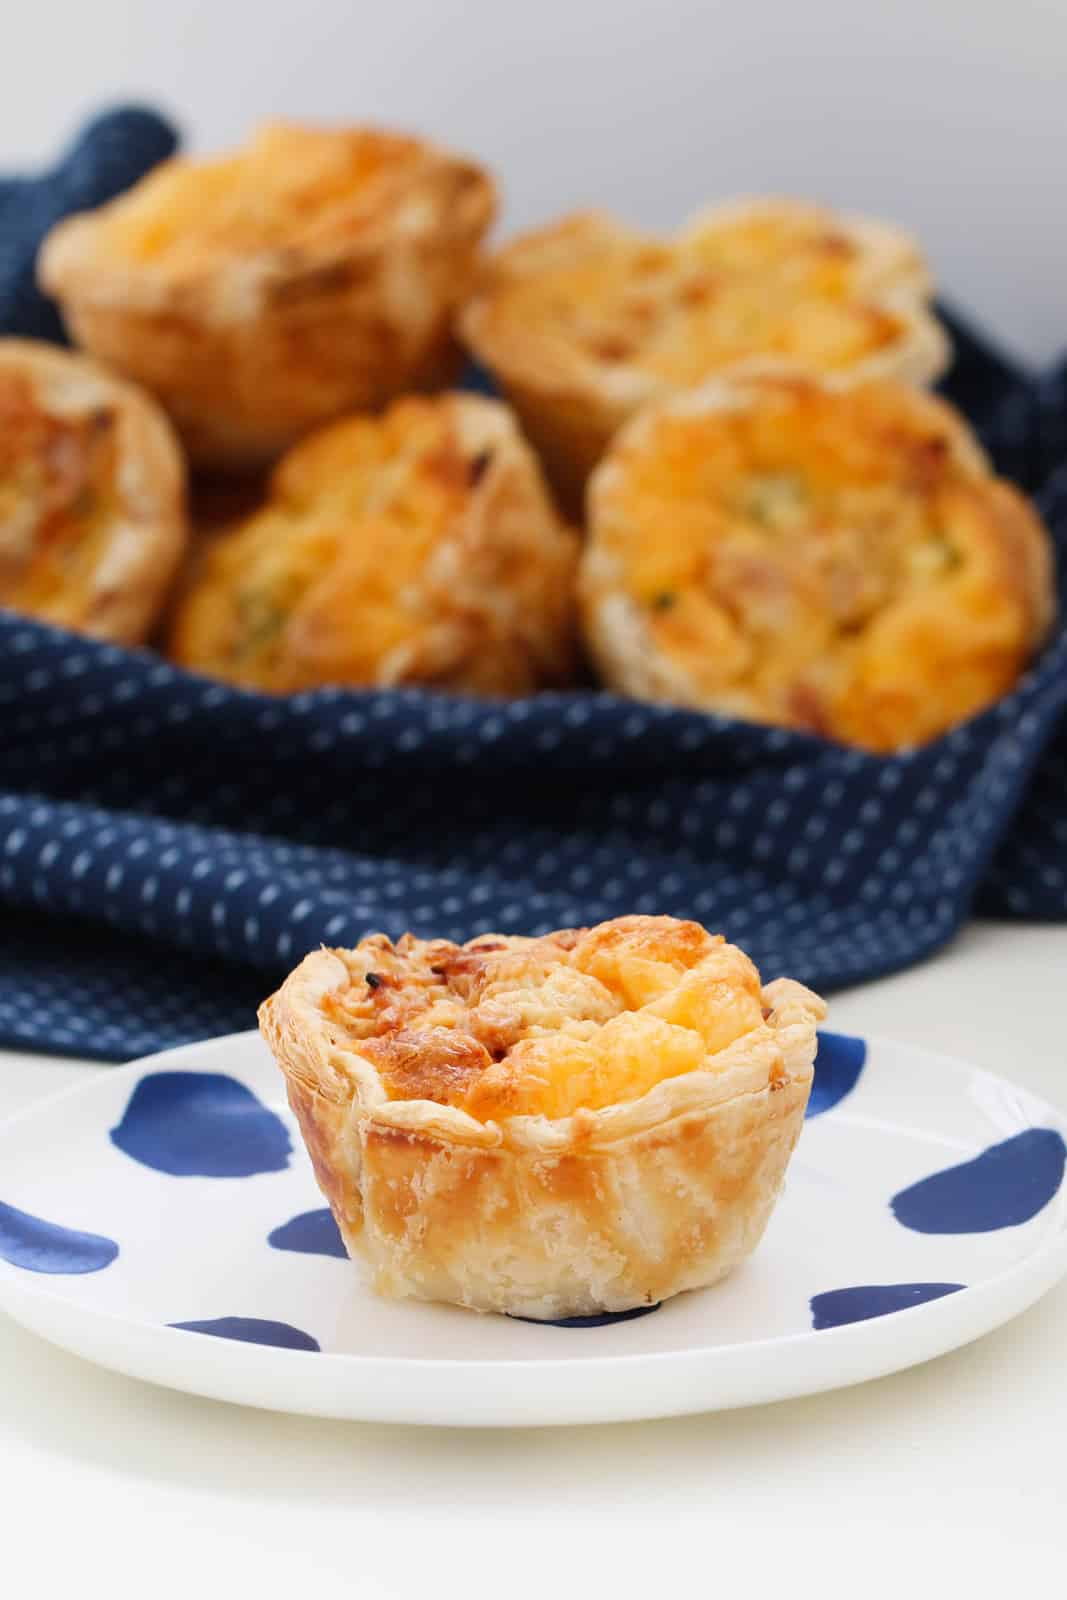 Blurred muffin sized puff pastry quiches on a crumpled blue tea towel behind an individual quiche on a white and blue plate